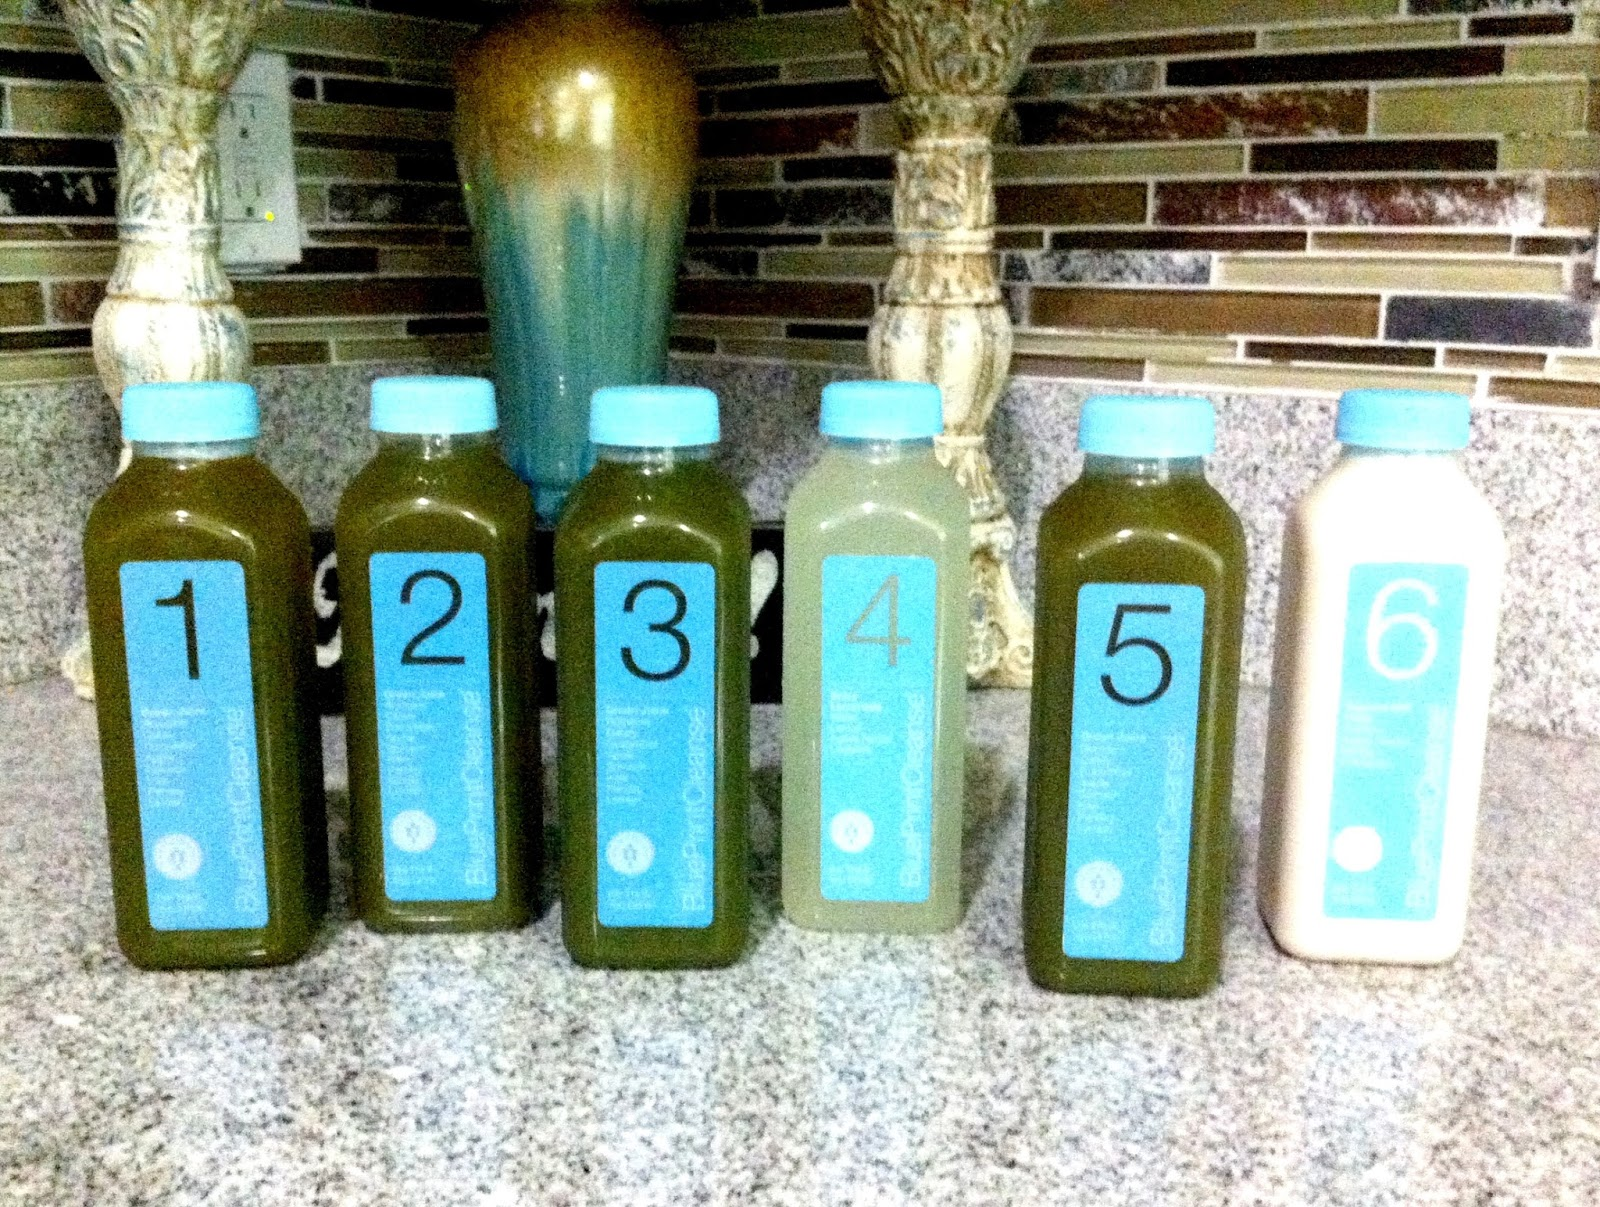 Dot dot dot blueprint cleanse i did my normal 2 day detox details found here then did one day of the raw juice cleanse by blueprint malvernweather Gallery